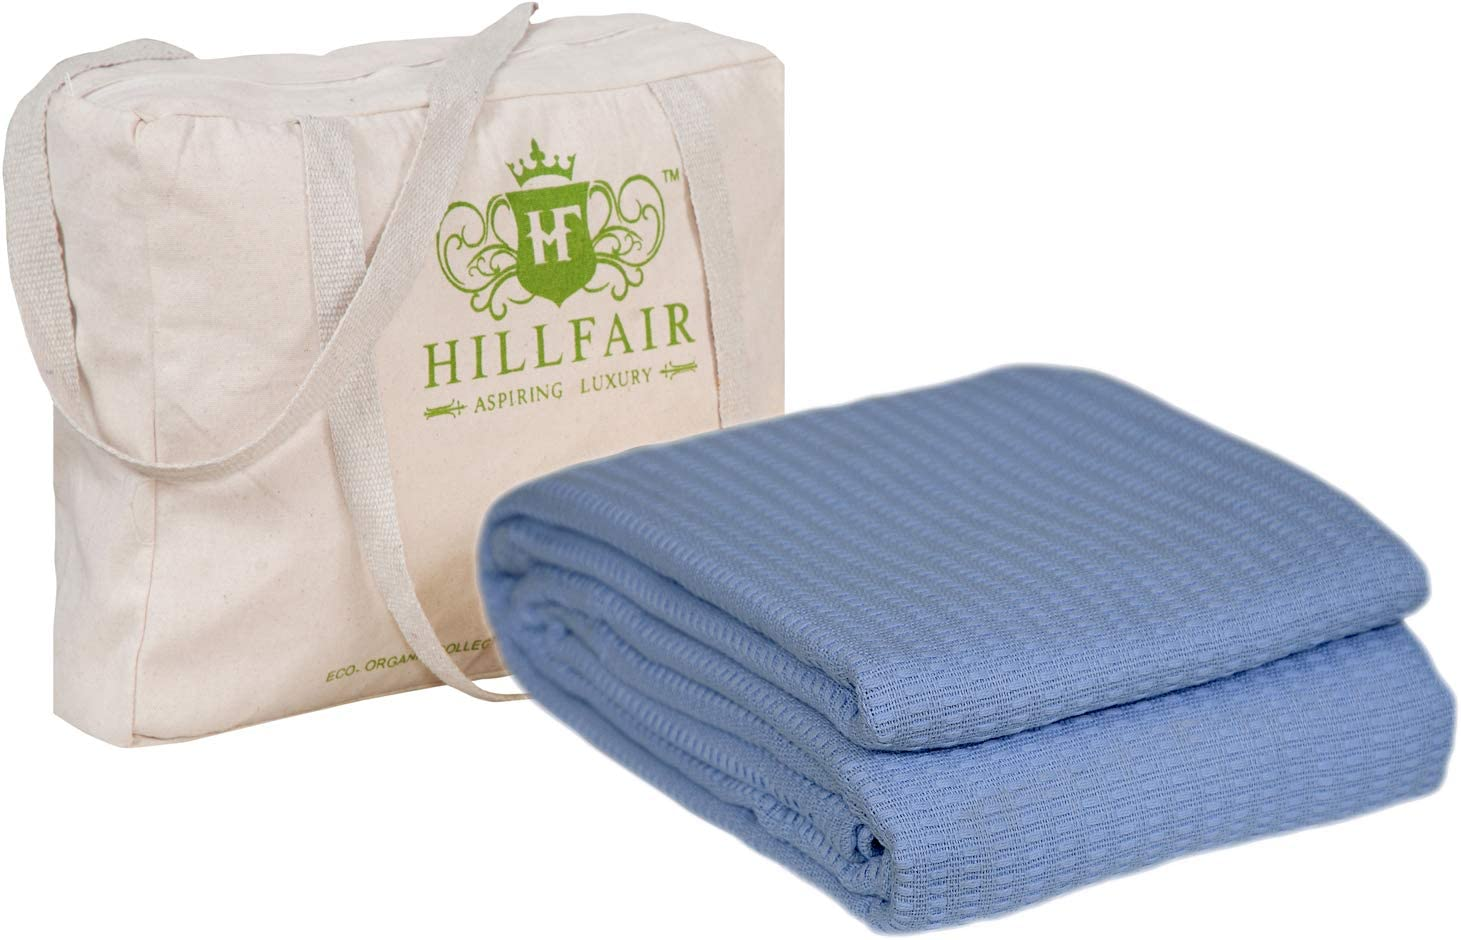 Hillfair 100 Certified Organic Cotton Winter Blankets Twin Size Bed Blankets All Season Cotton Blanket Organic Cotton Bed Blankets Soft Multipurpose Twin Blankets Blue Twin Size Blanket Kitchen Dining Amazon Com